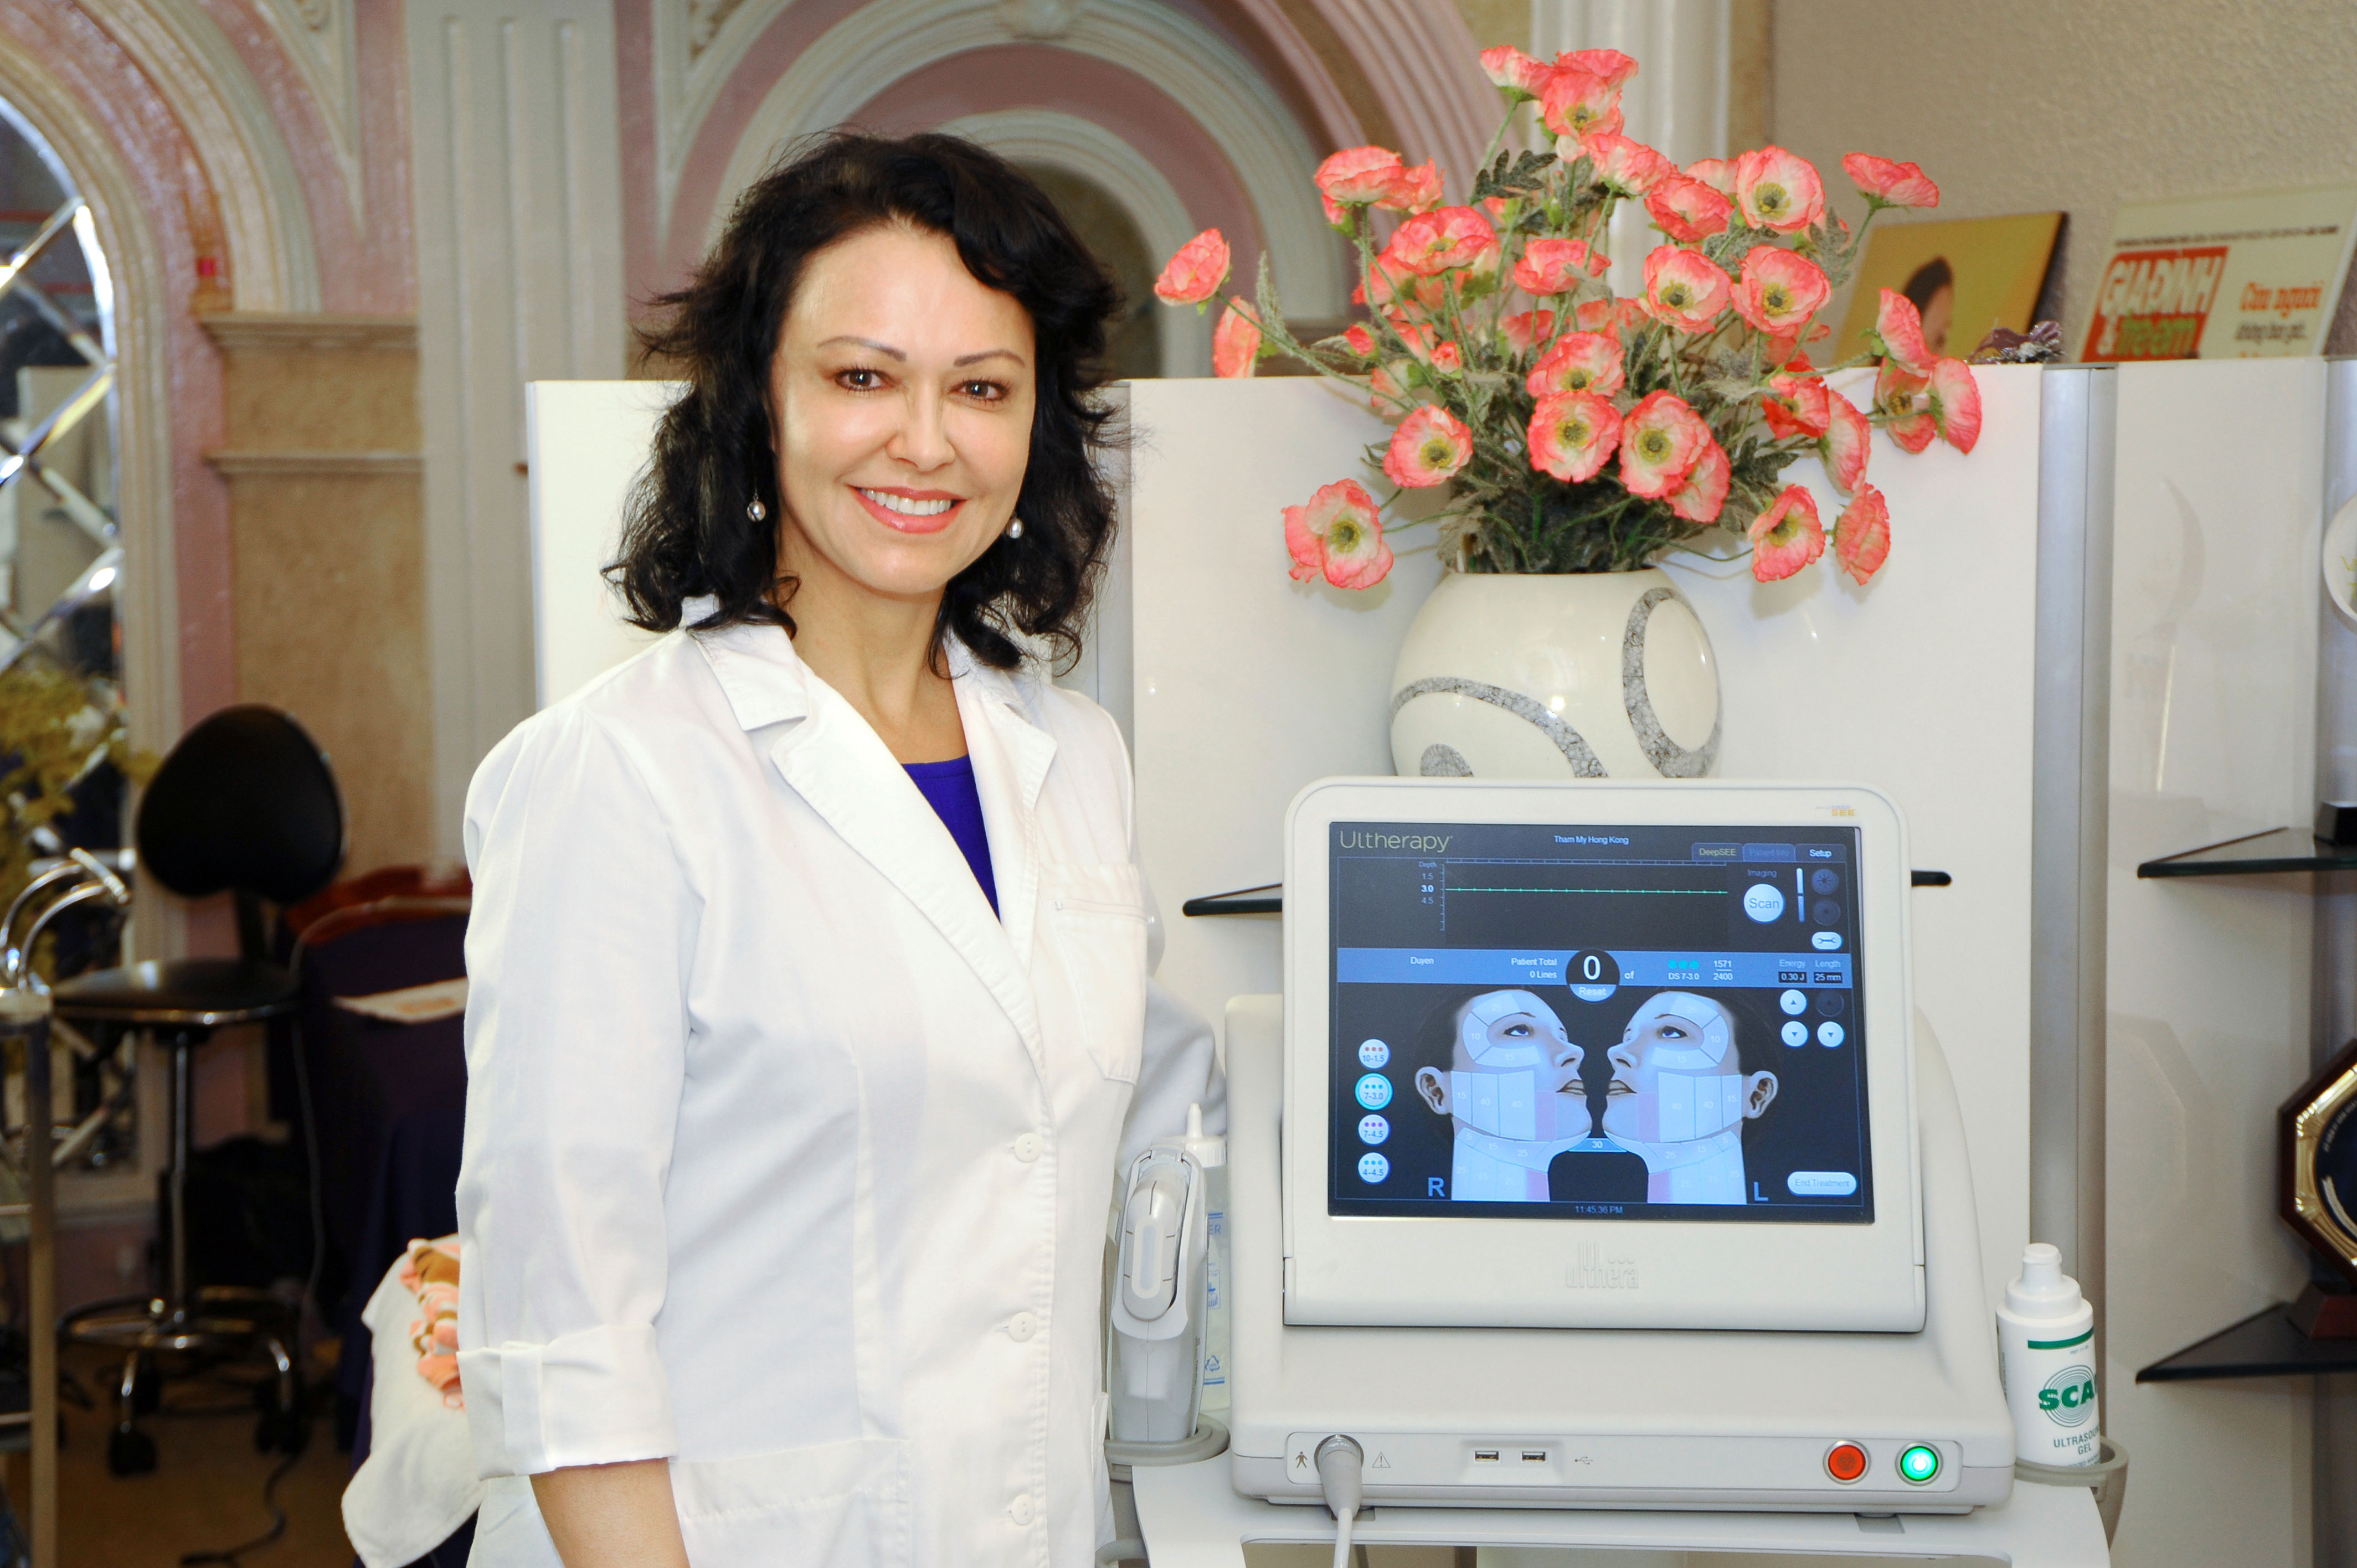 cong-nghe-giam-beo-cam-Ultherapy